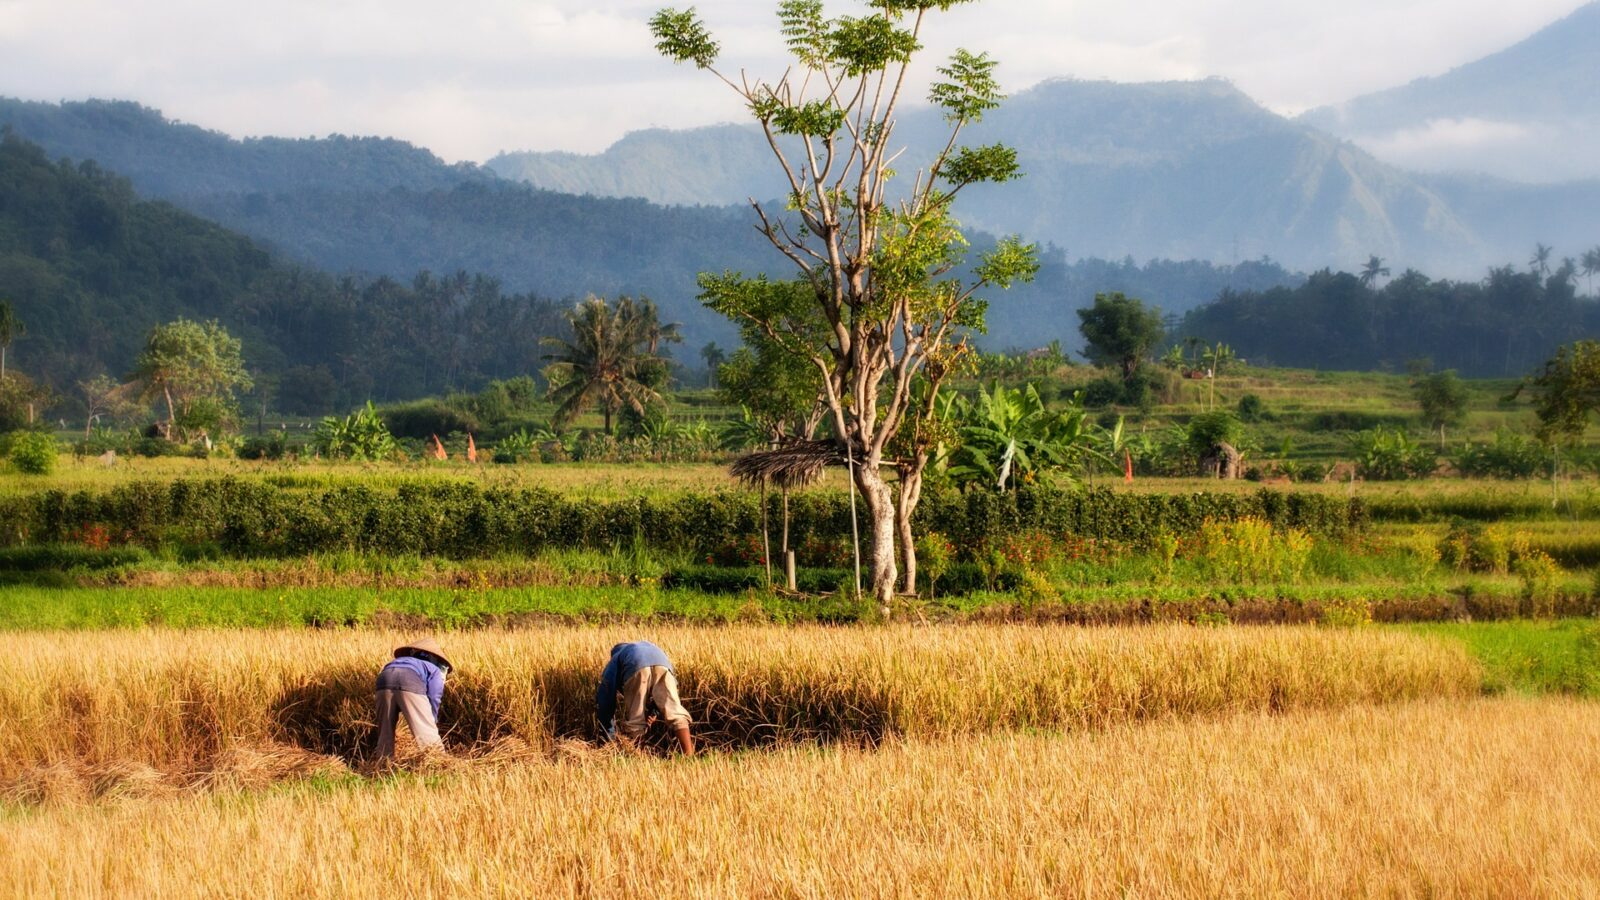 Farmers work in field in Bali